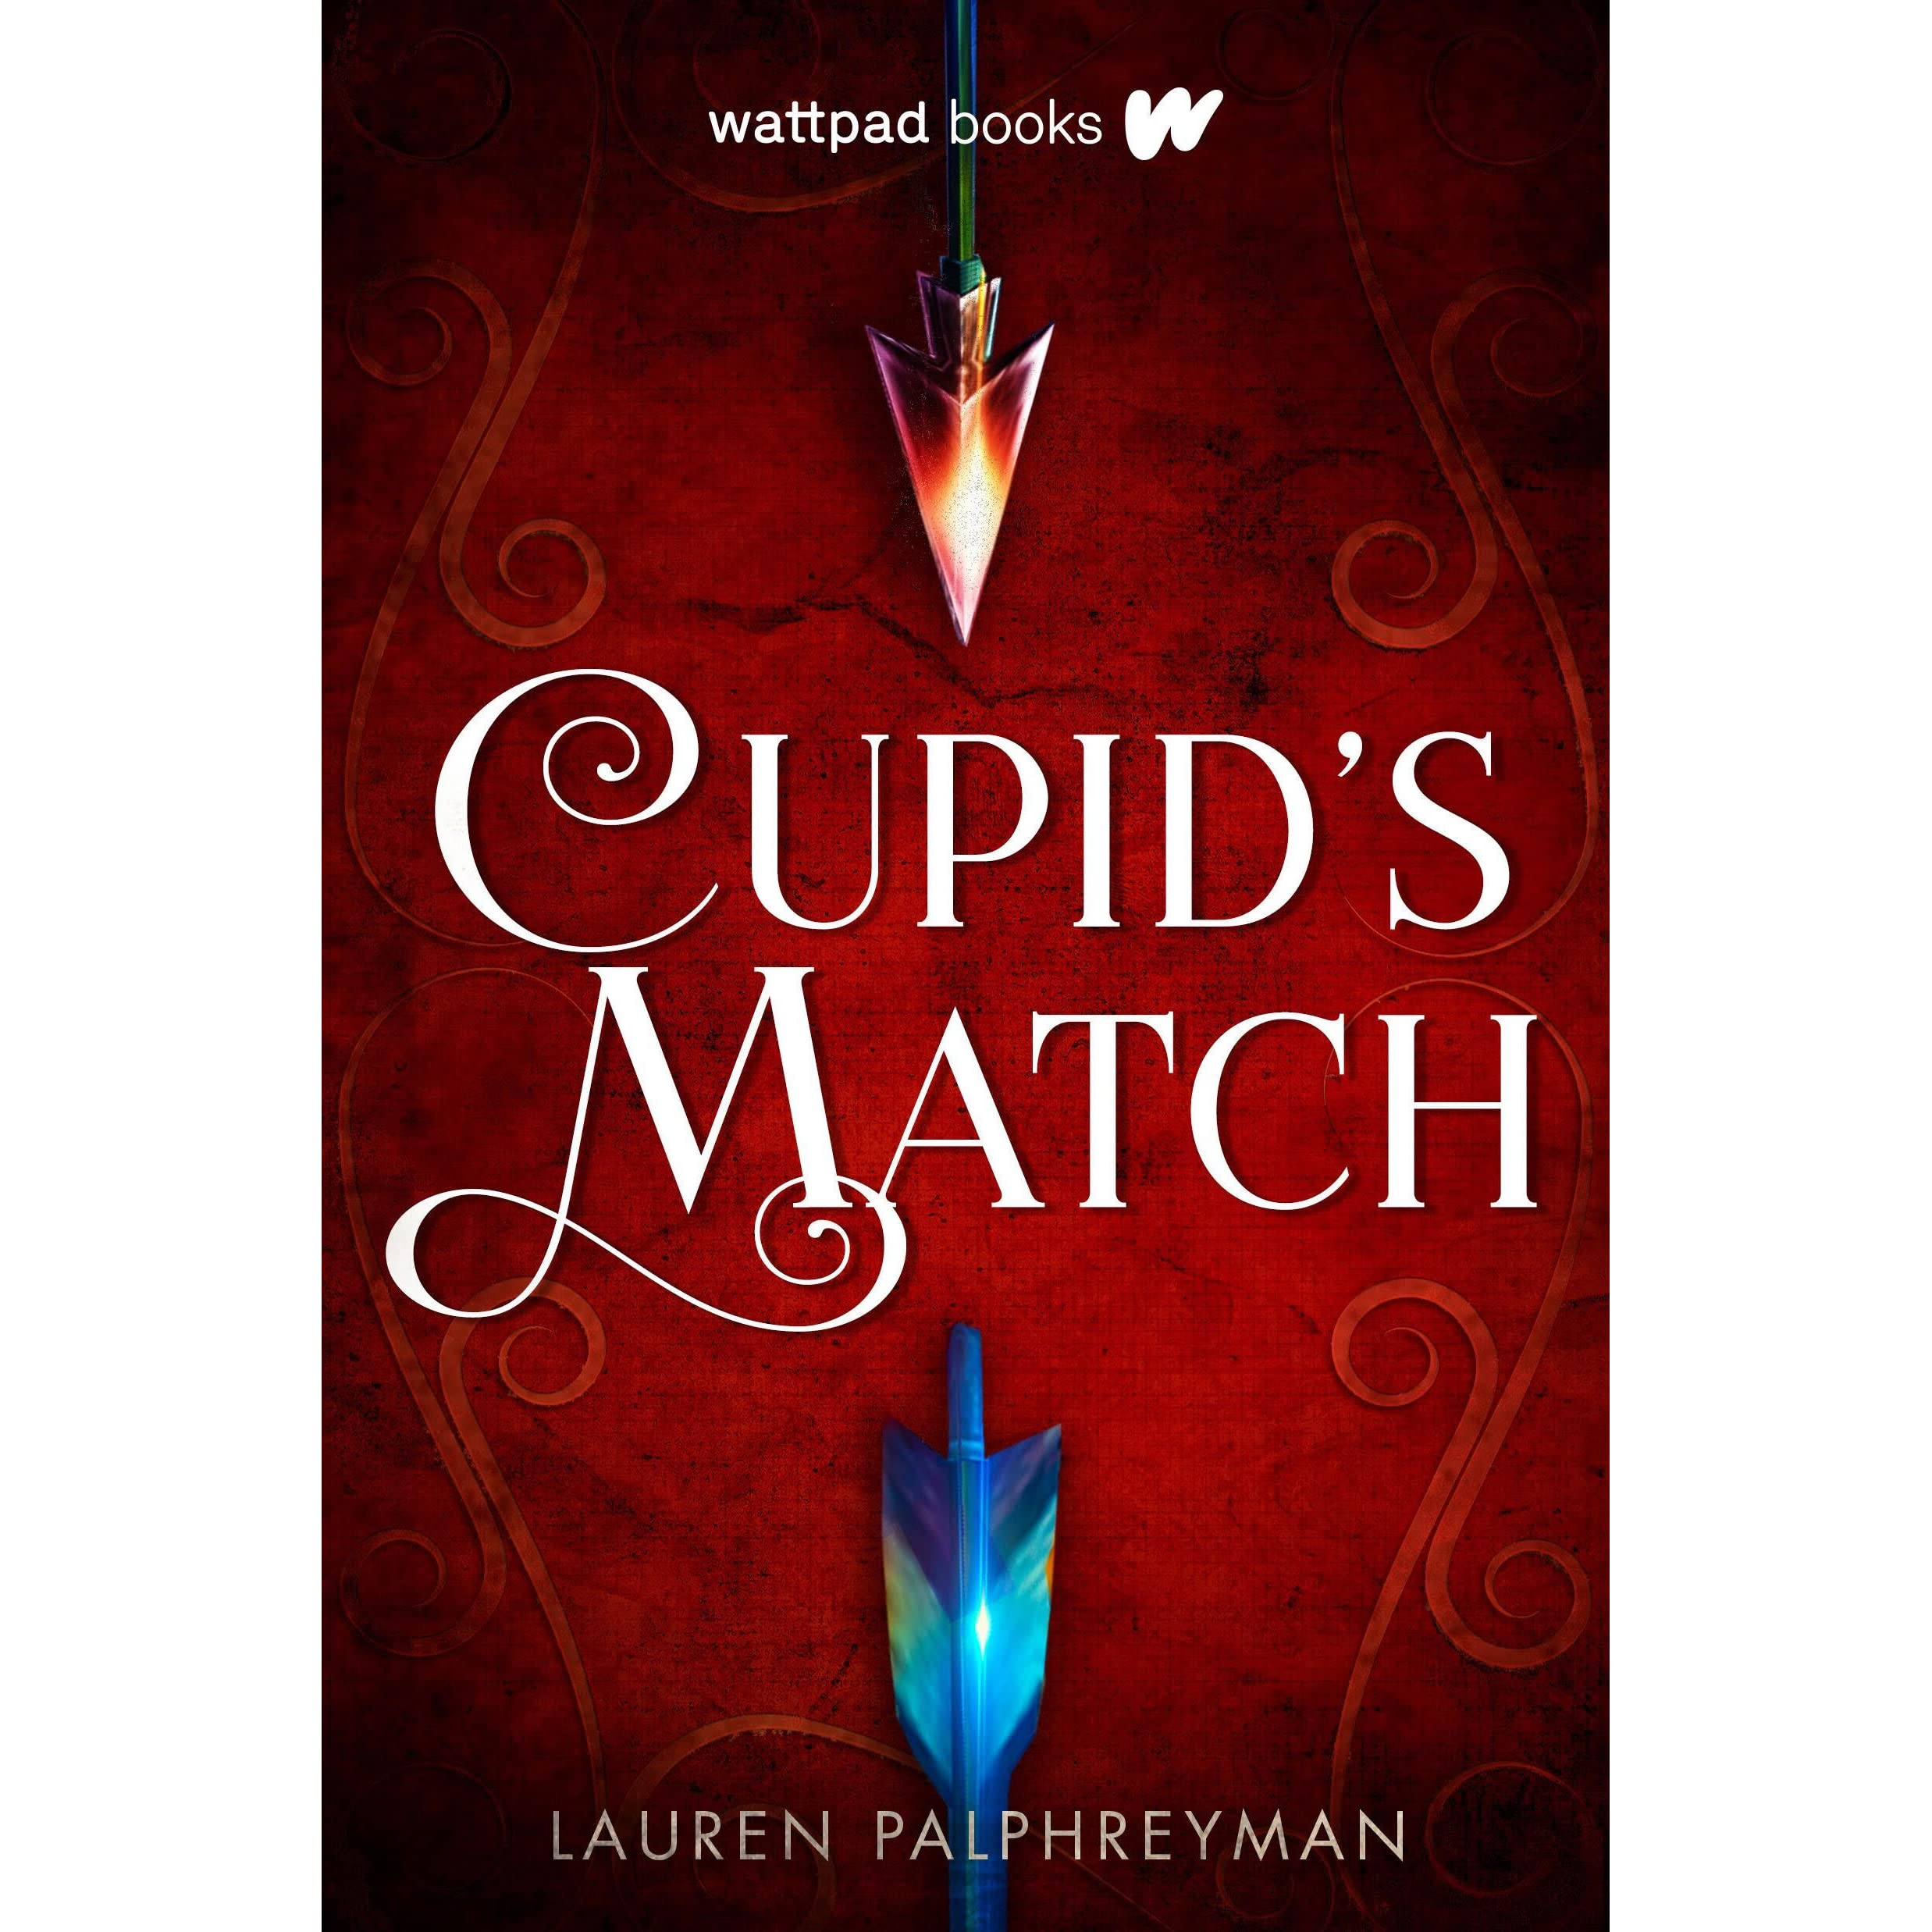 Cupid's Match by Lauren Palphreyman